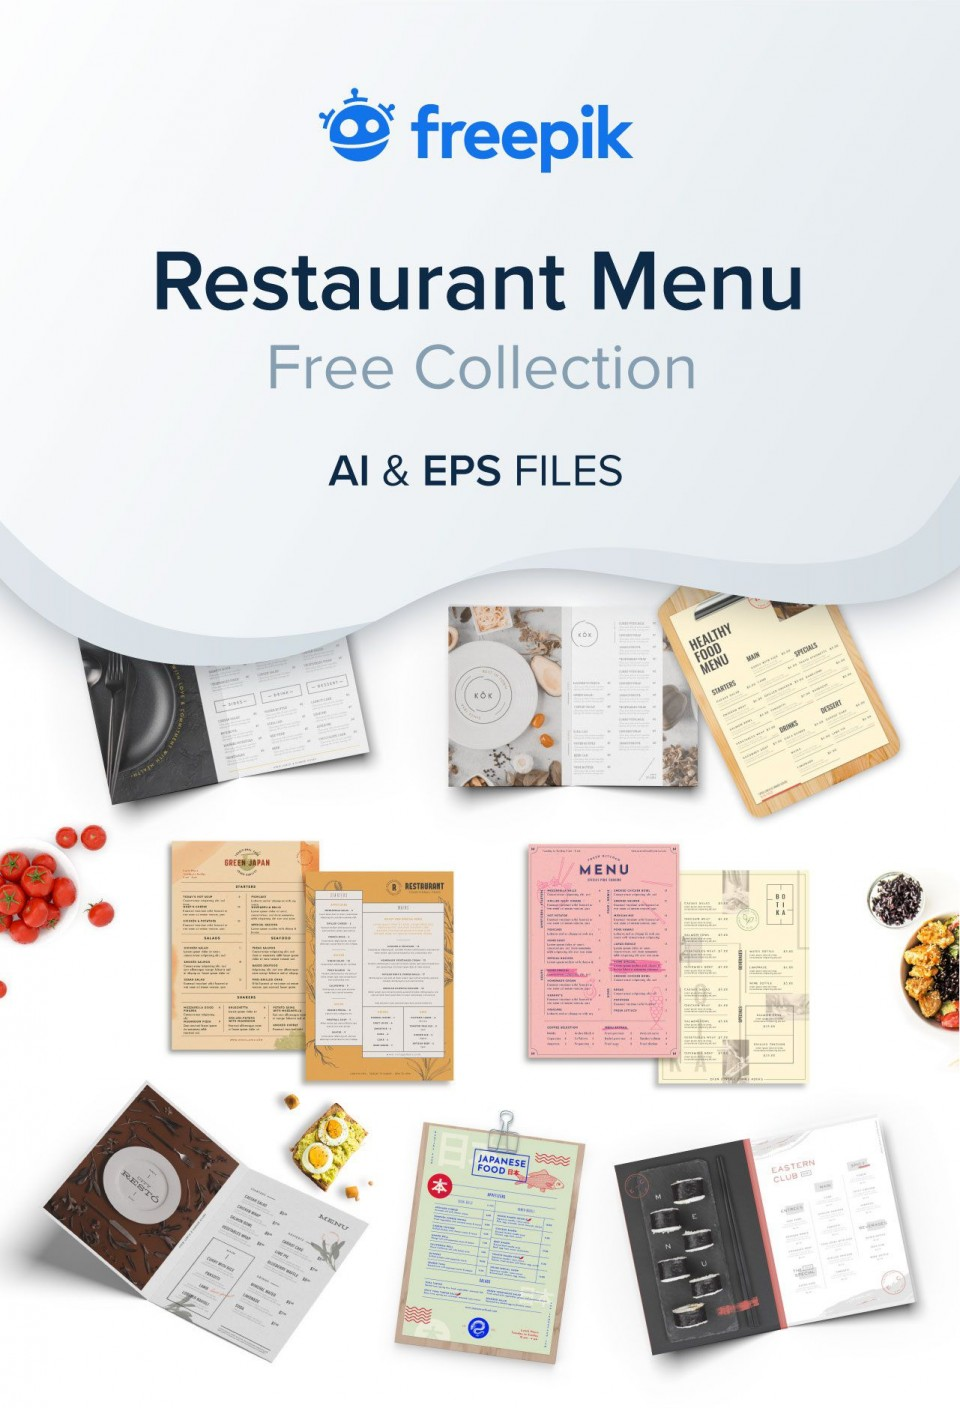 007 Outstanding Free Menu Template Download Example  Beauty Parlour Card Html Design Restaurant960